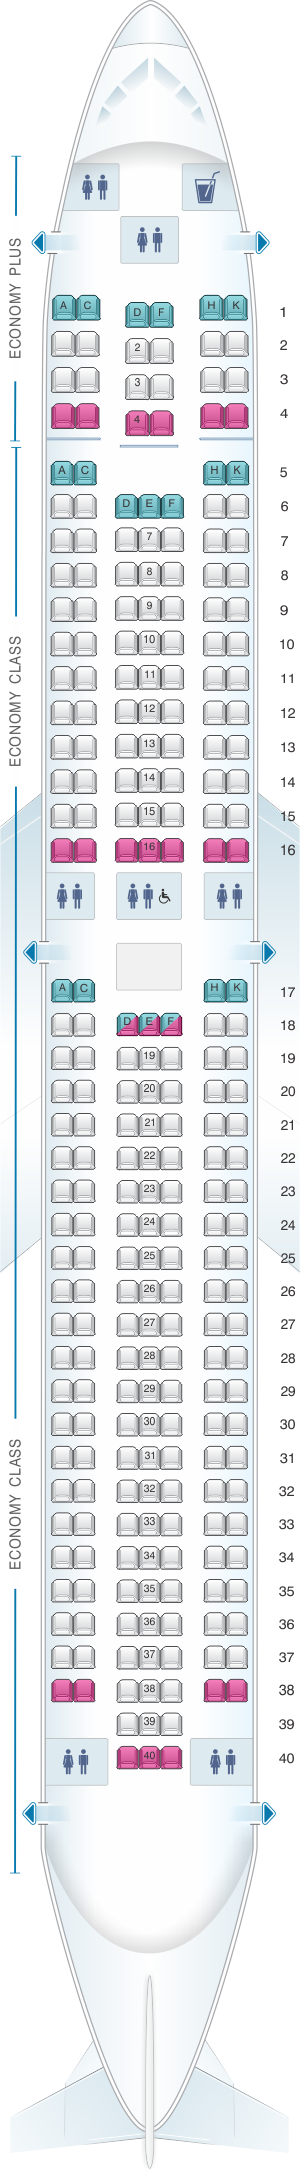 Seat map for WestJet Boeing B767 300